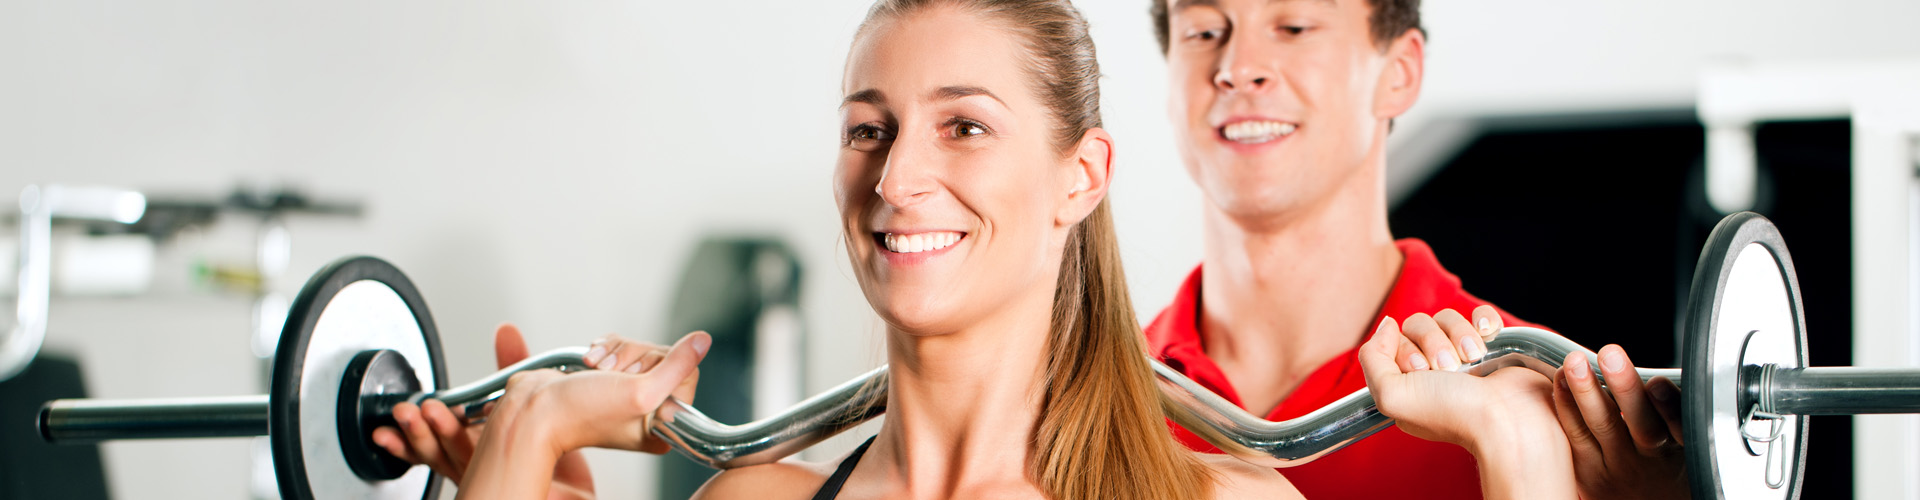 Certificate in Personal Training QCF (Level 3)